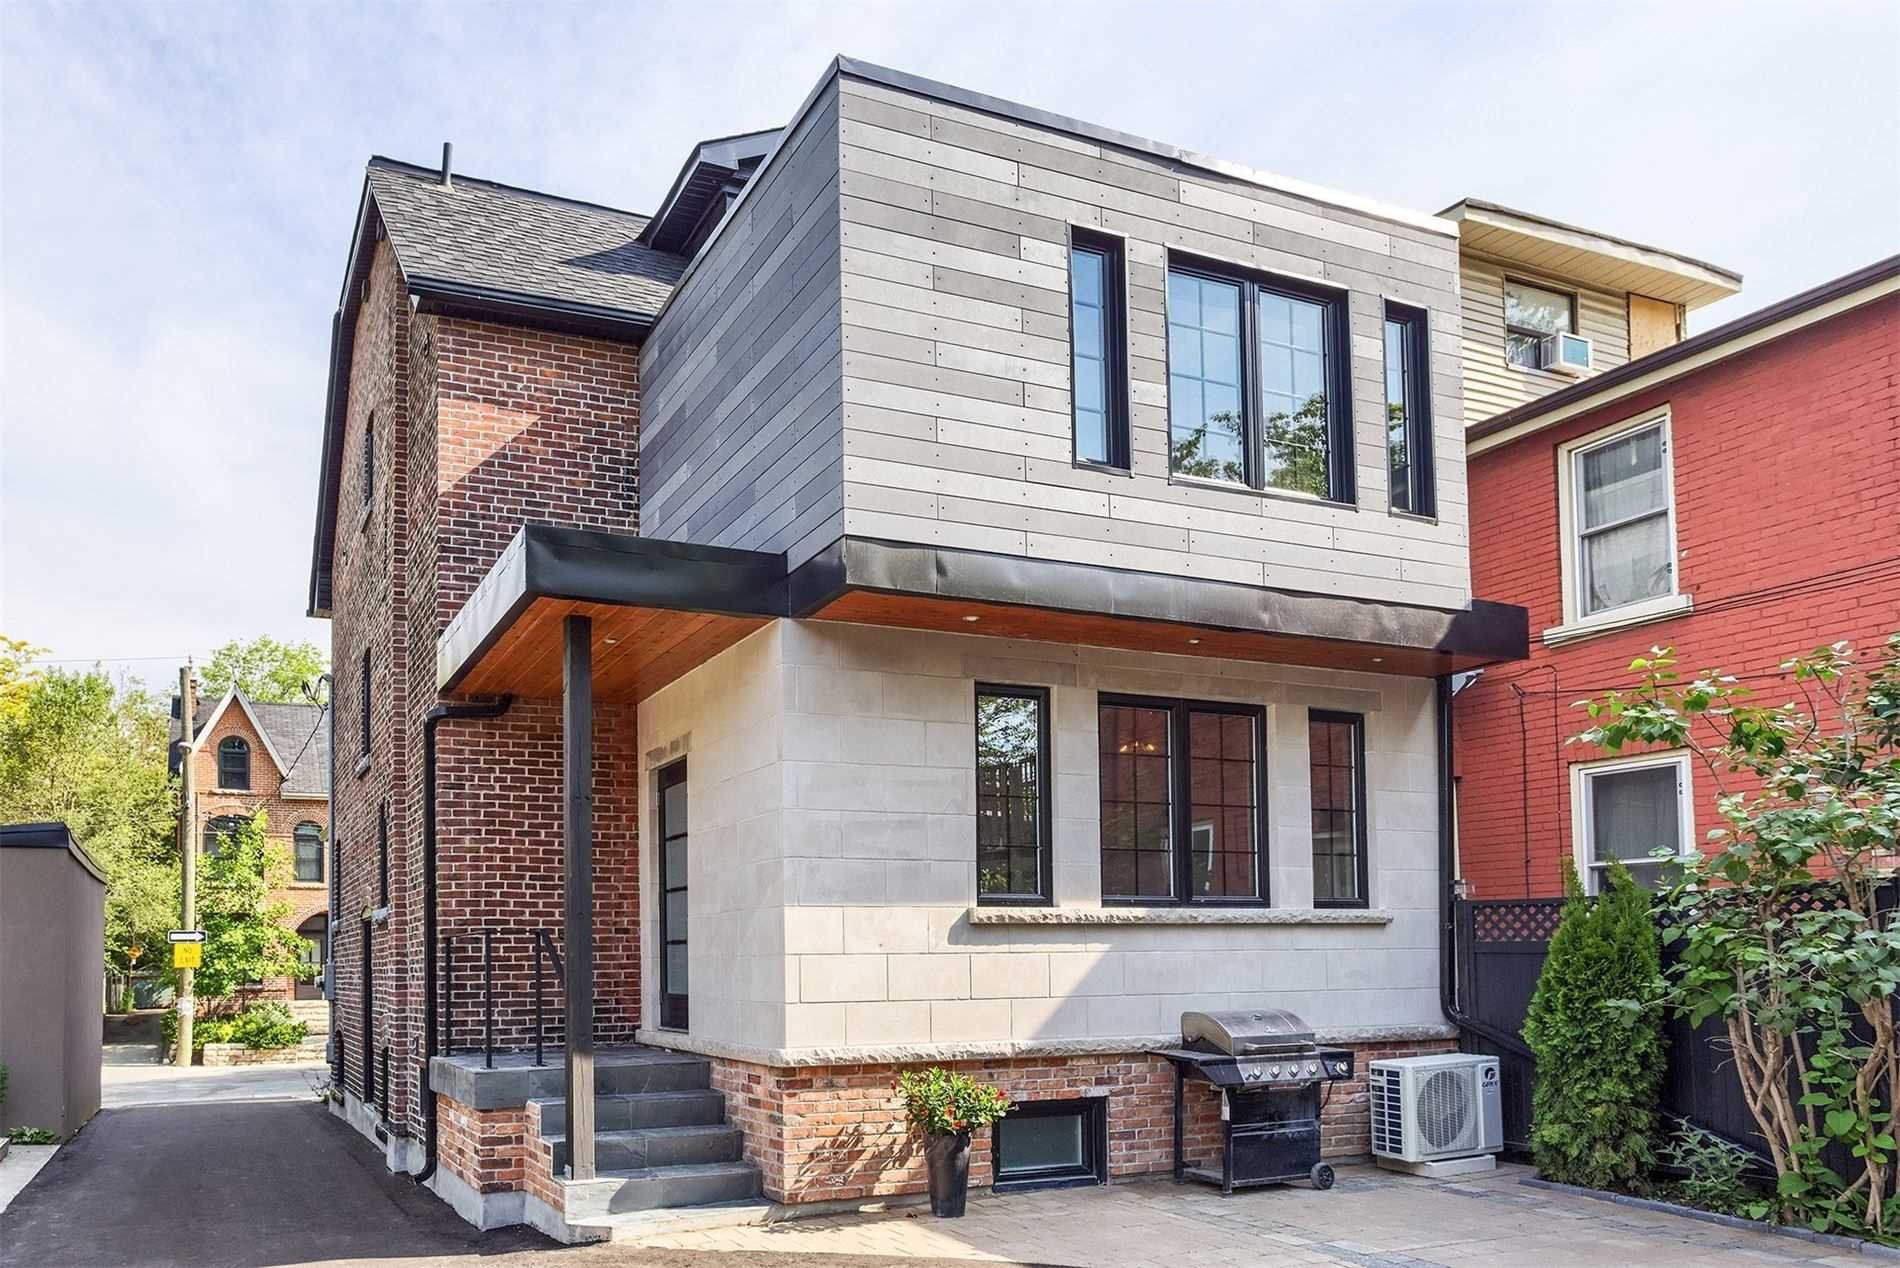 Photo 1: Photos: 53 Pearson Avenue in Toronto: Roncesvalles House (Other) for lease (Toronto W01)  : MLS®# W4816830